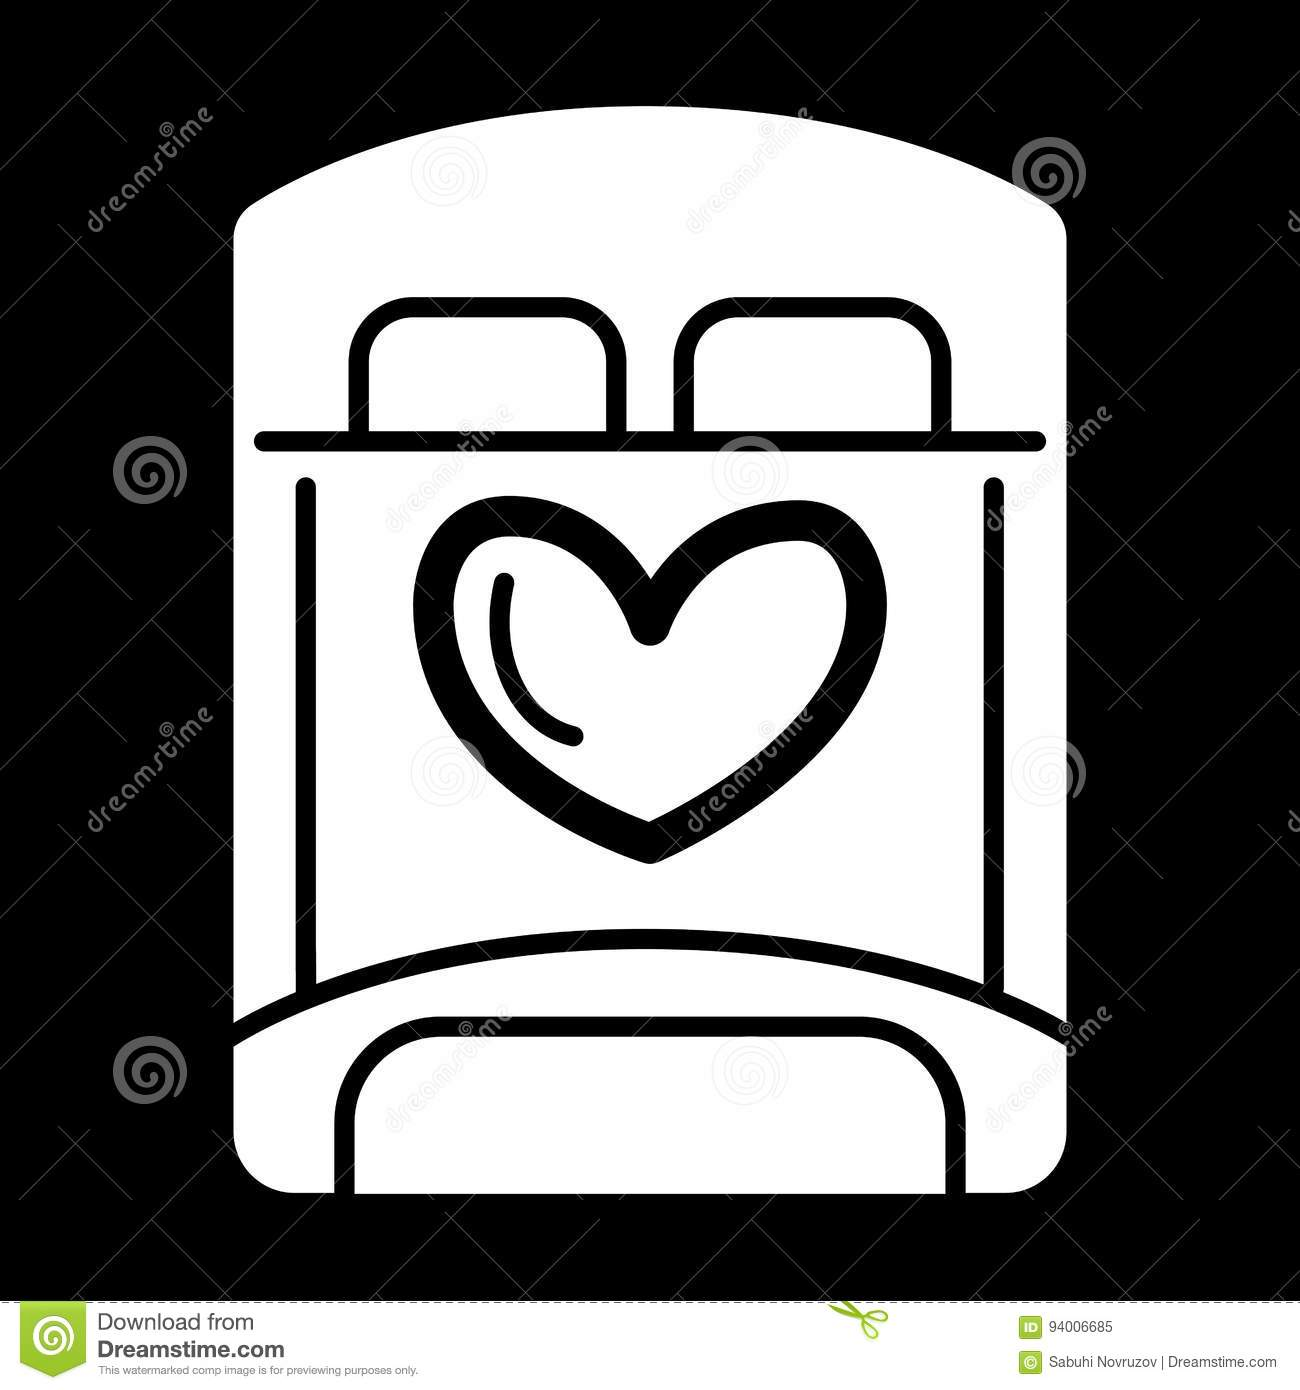 Bed for lovers simple vector icon black and white illustration of bed for lovers simple vector icon black and white illustration of bed for sex solid linear icon biocorpaavc